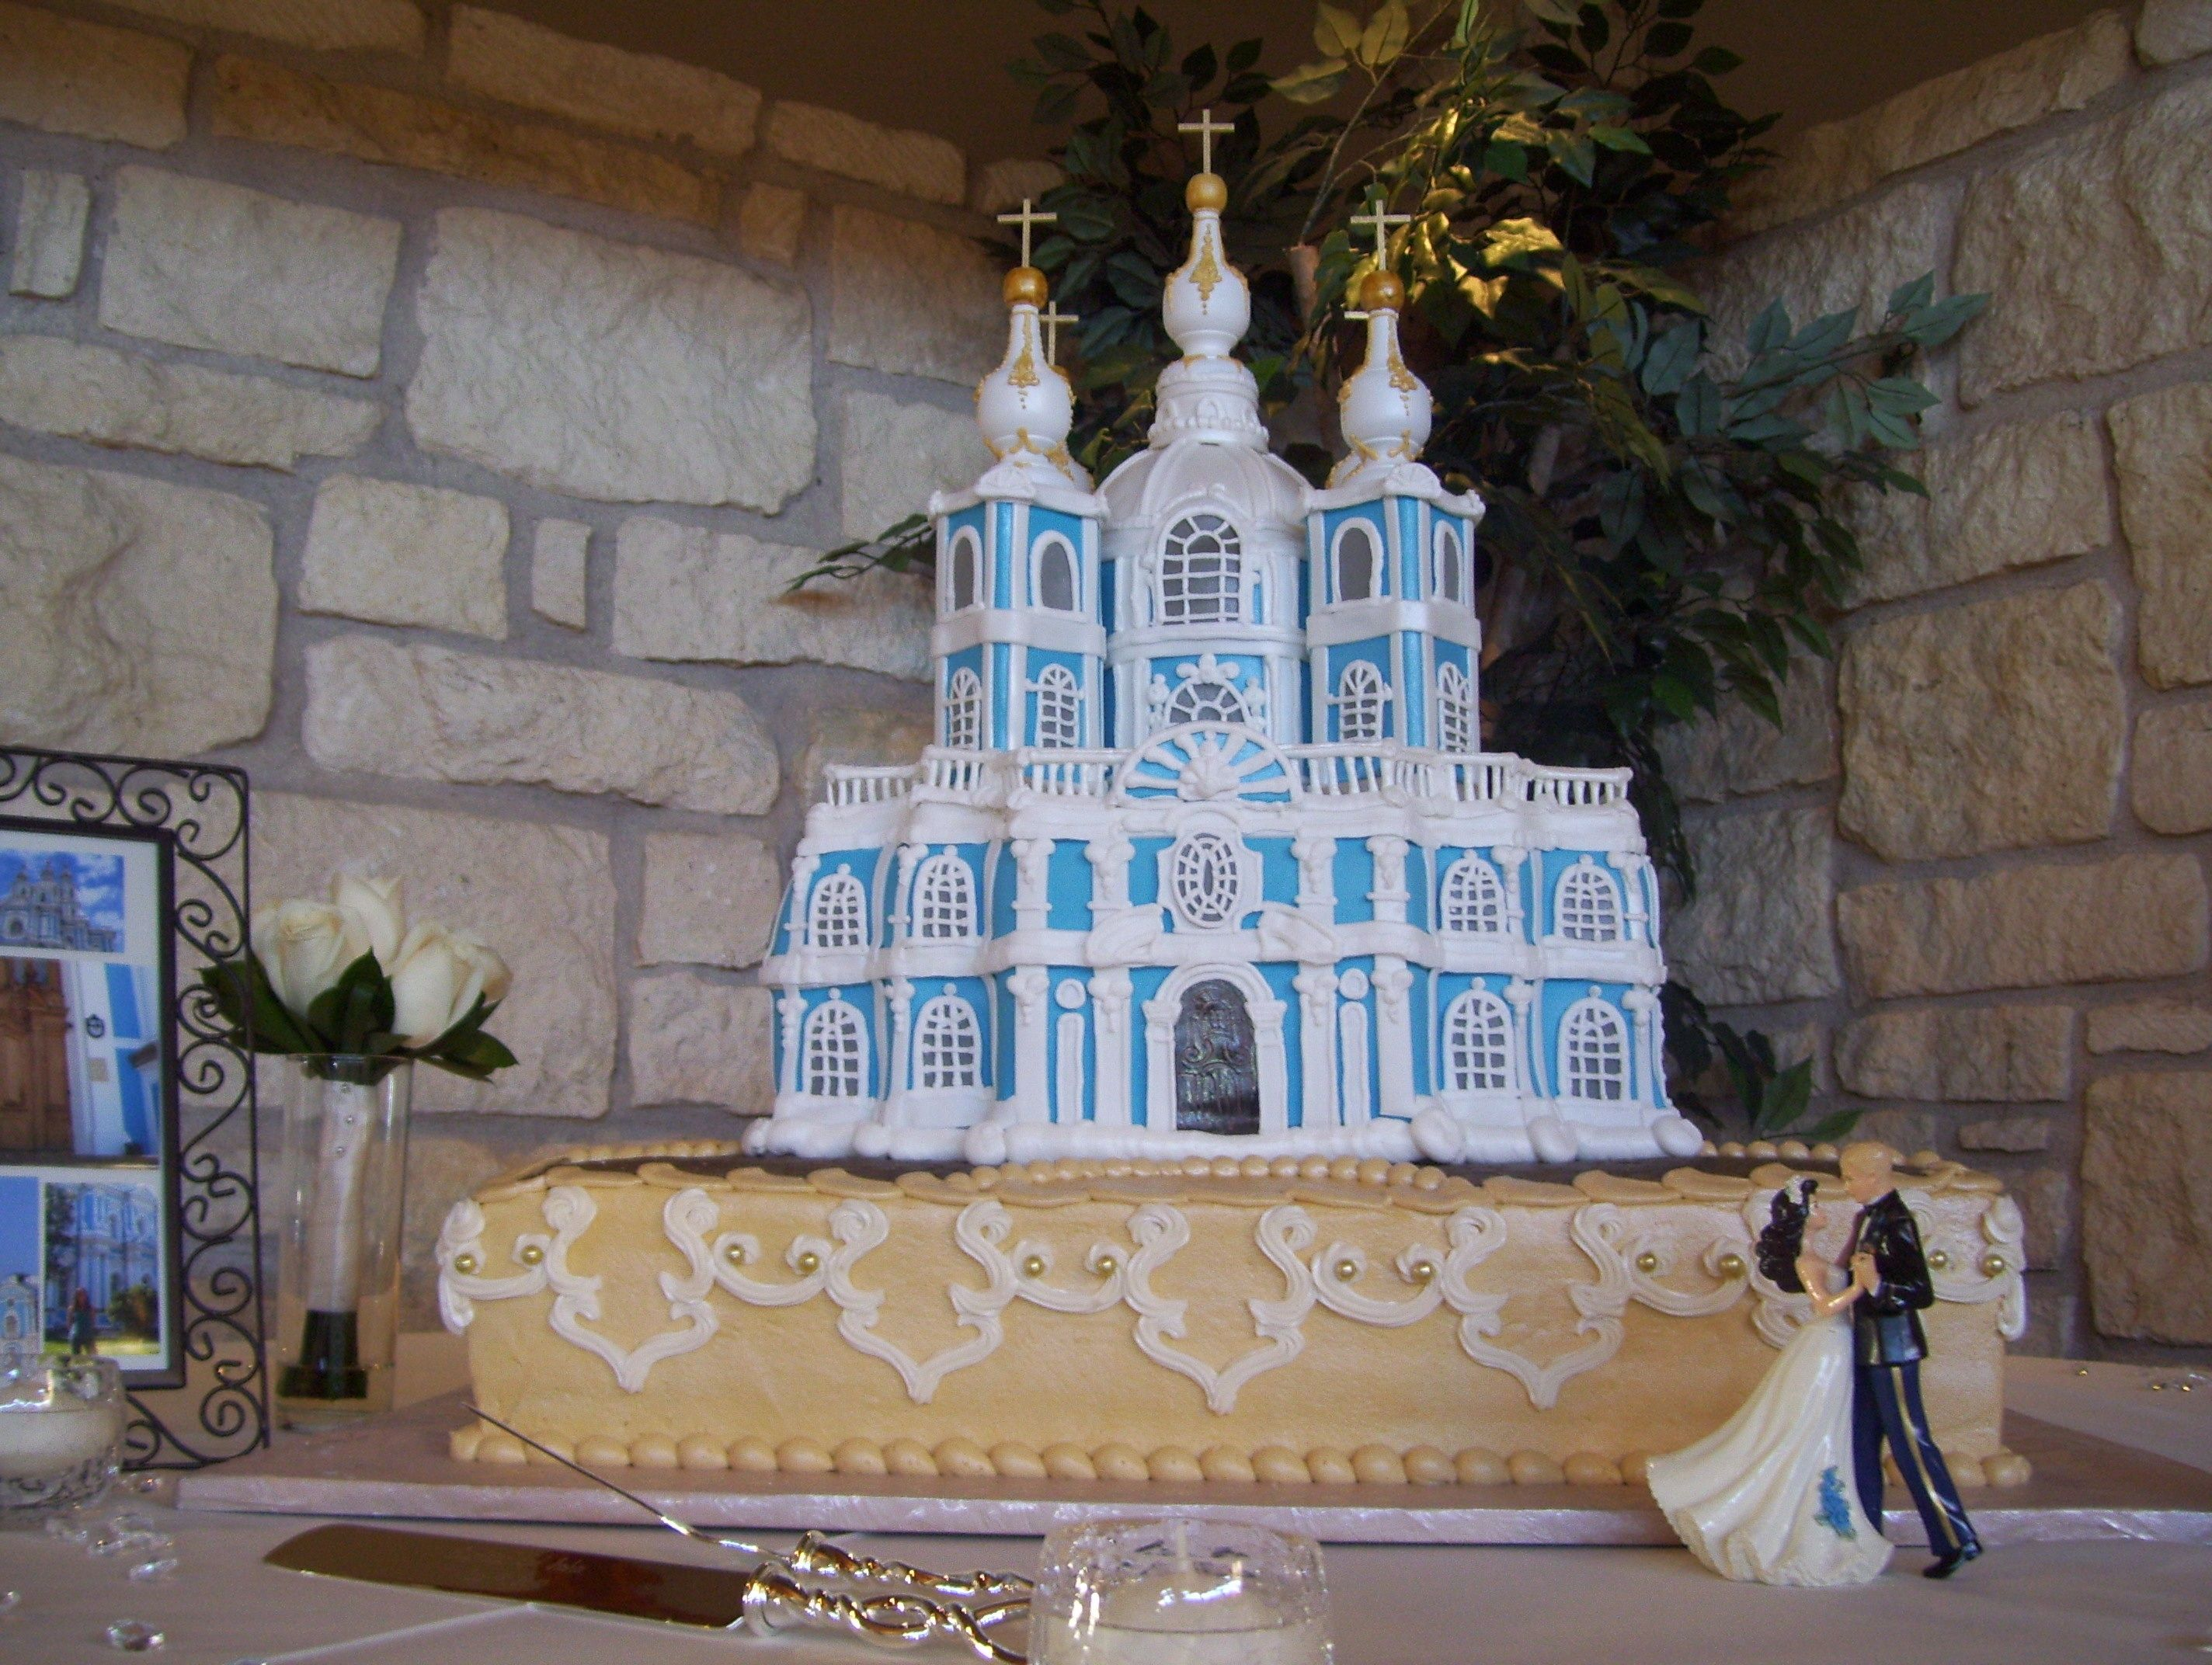 extravagant cakes this extravagant white and blue wedding cake is designed to be a